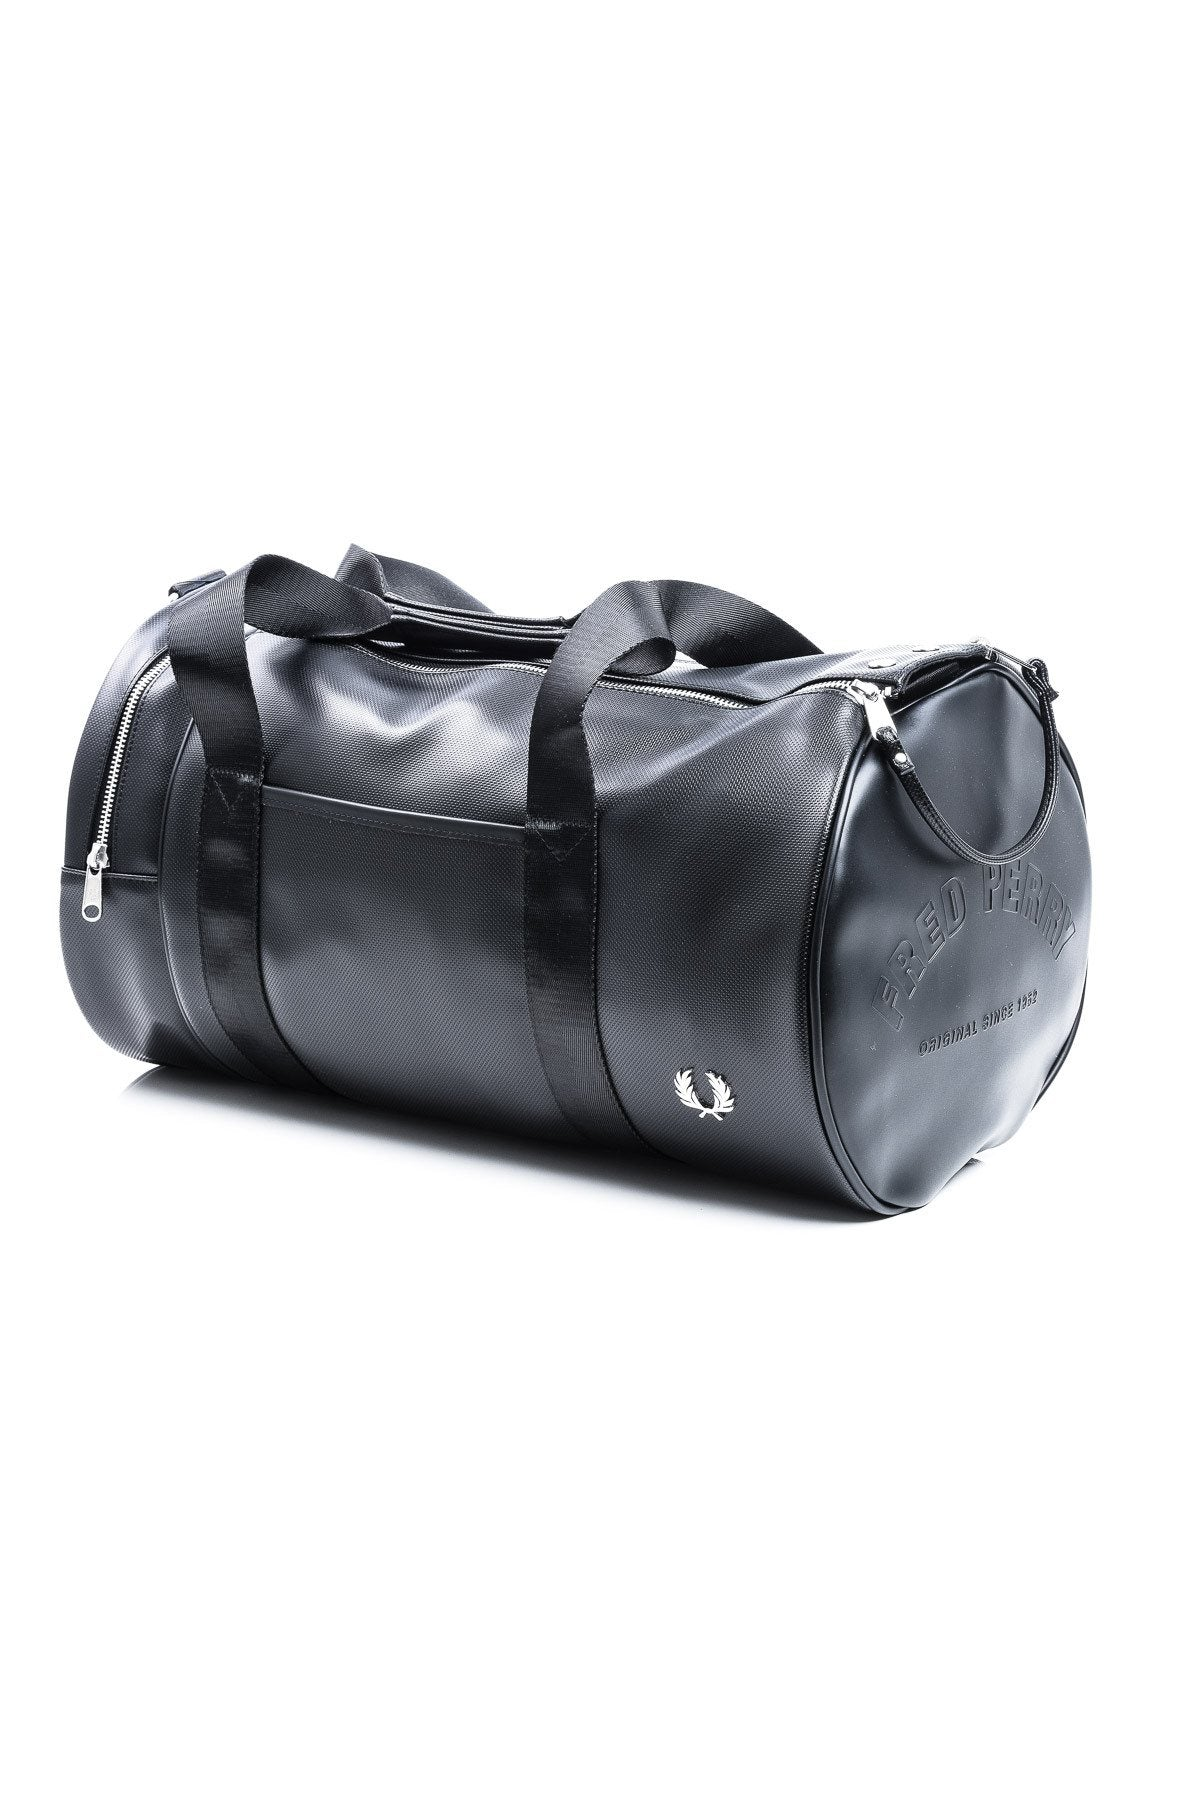 Accessories - Fred Perry L9201 Pique Texture Barrel Bag In Black